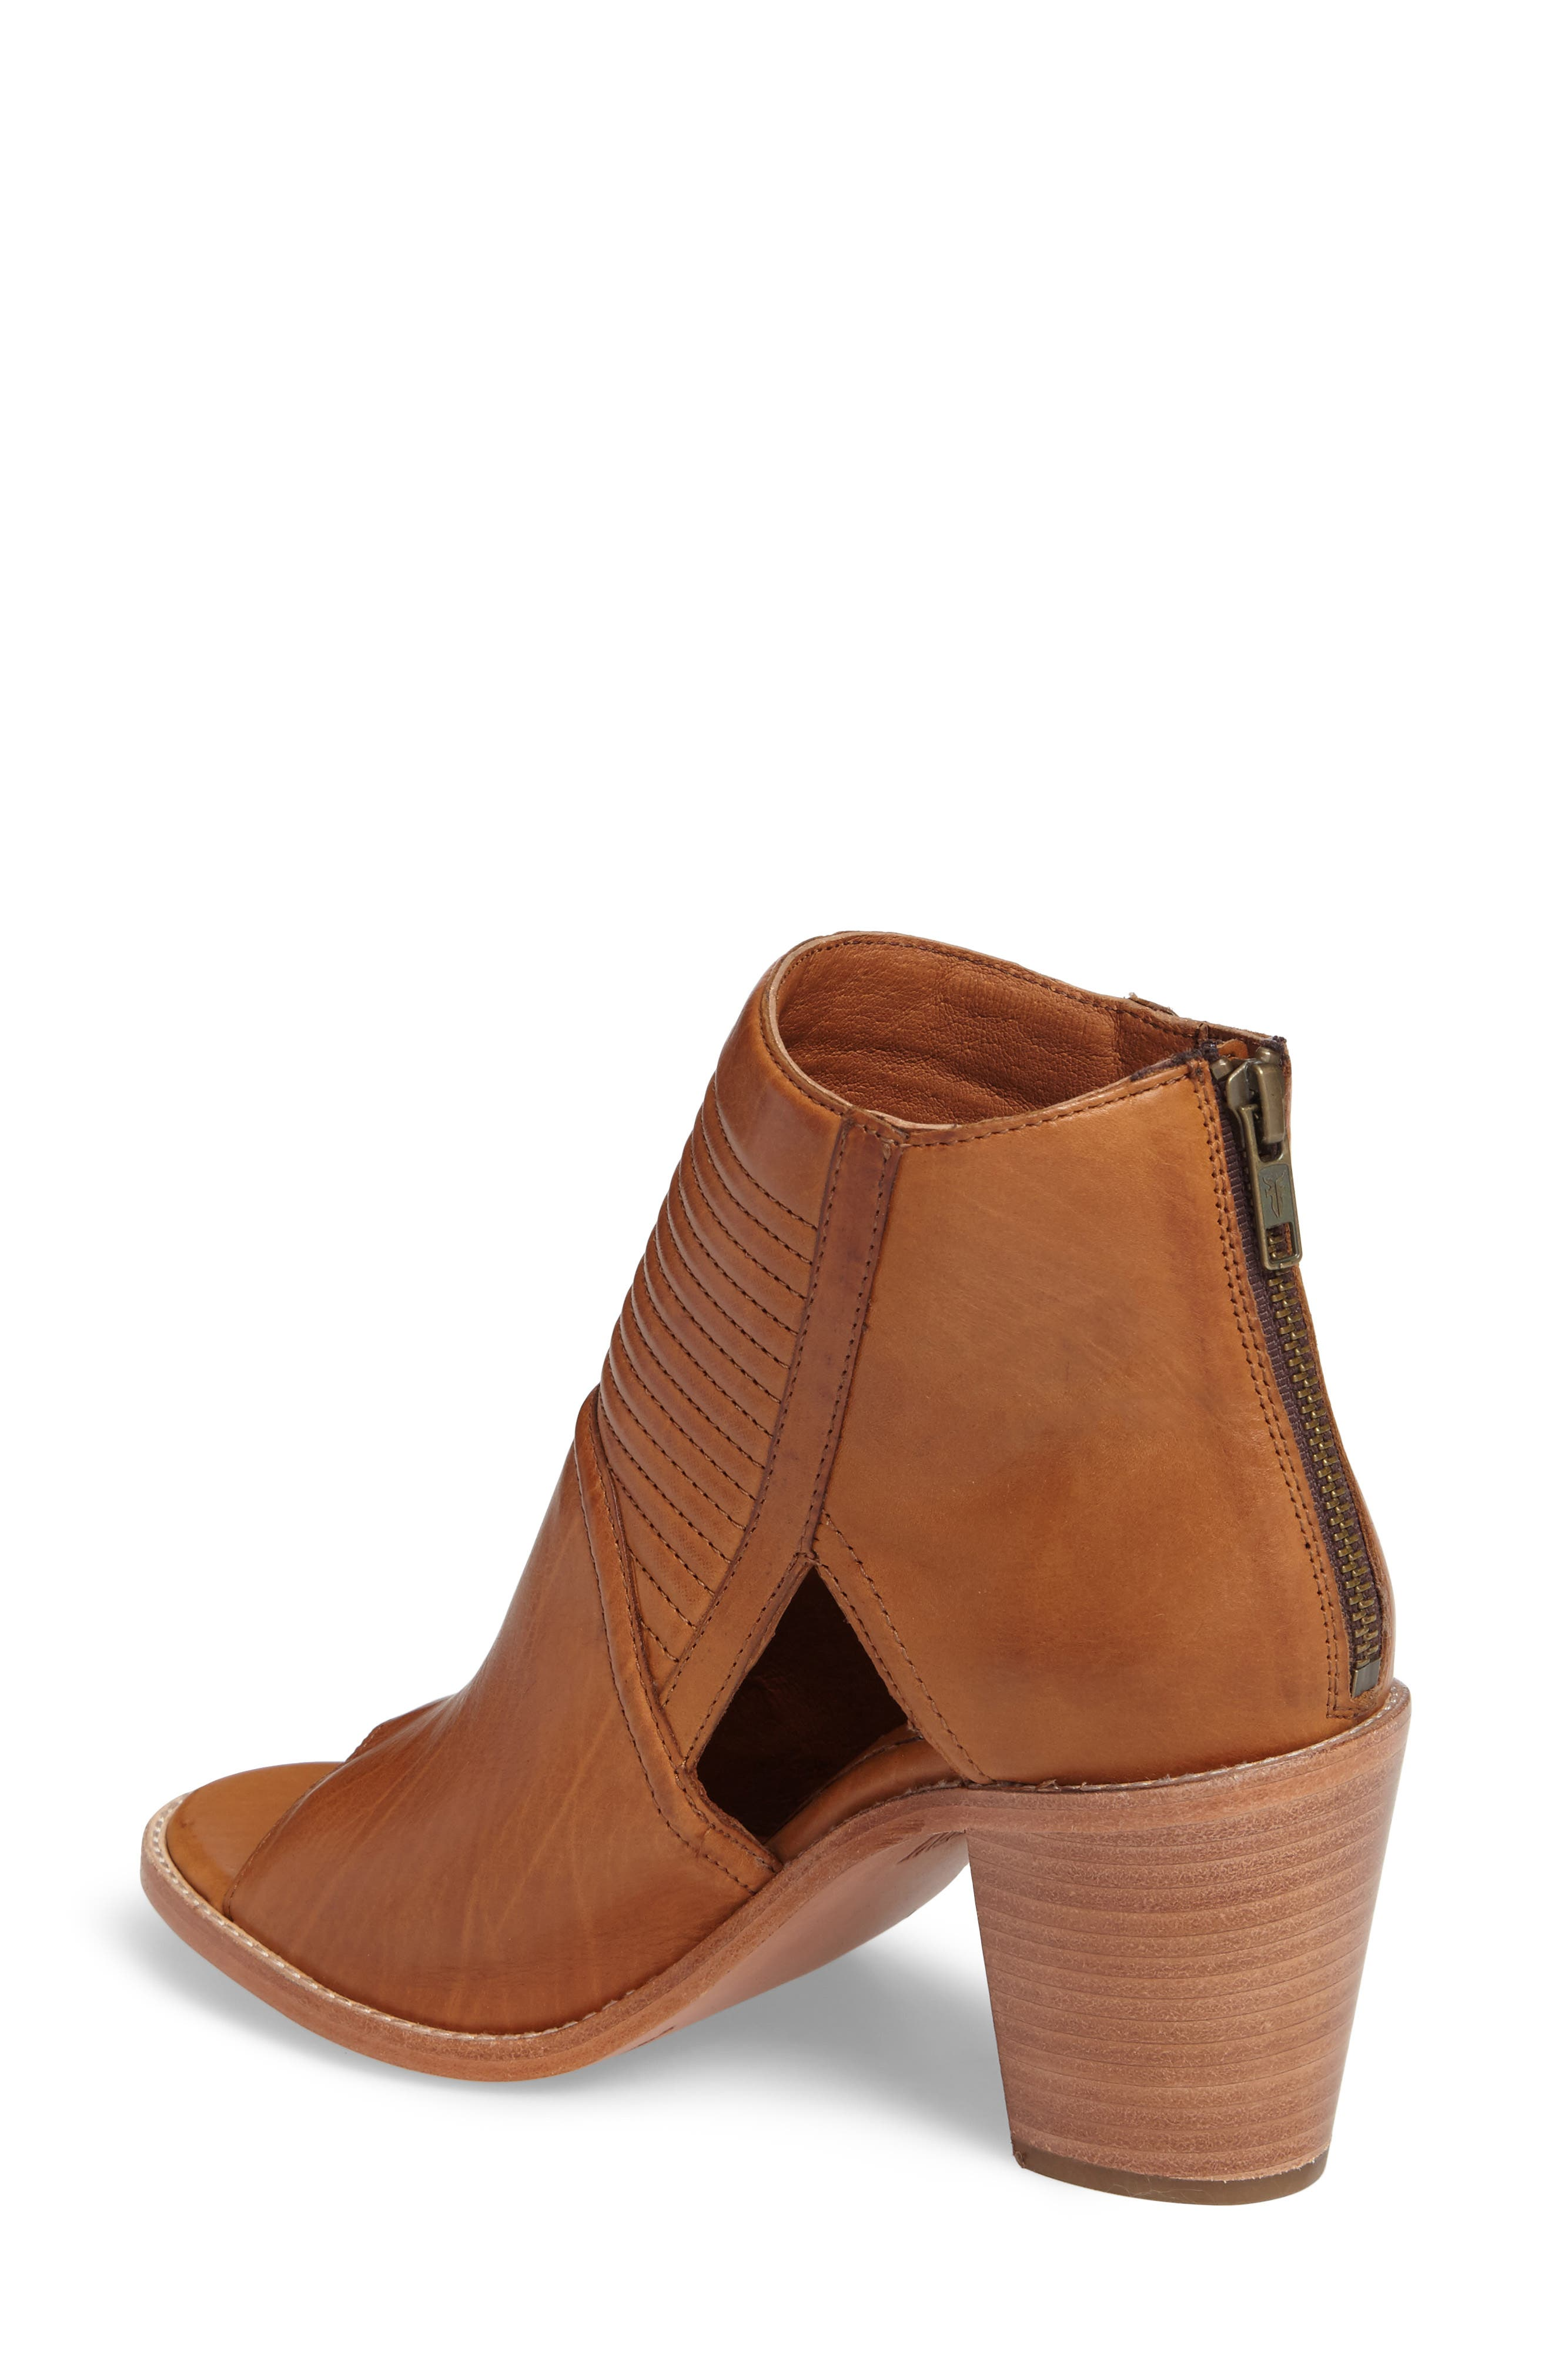 Bailey Quilted Peep Toe Bootie,                             Alternate thumbnail 2, color,                             Cognac